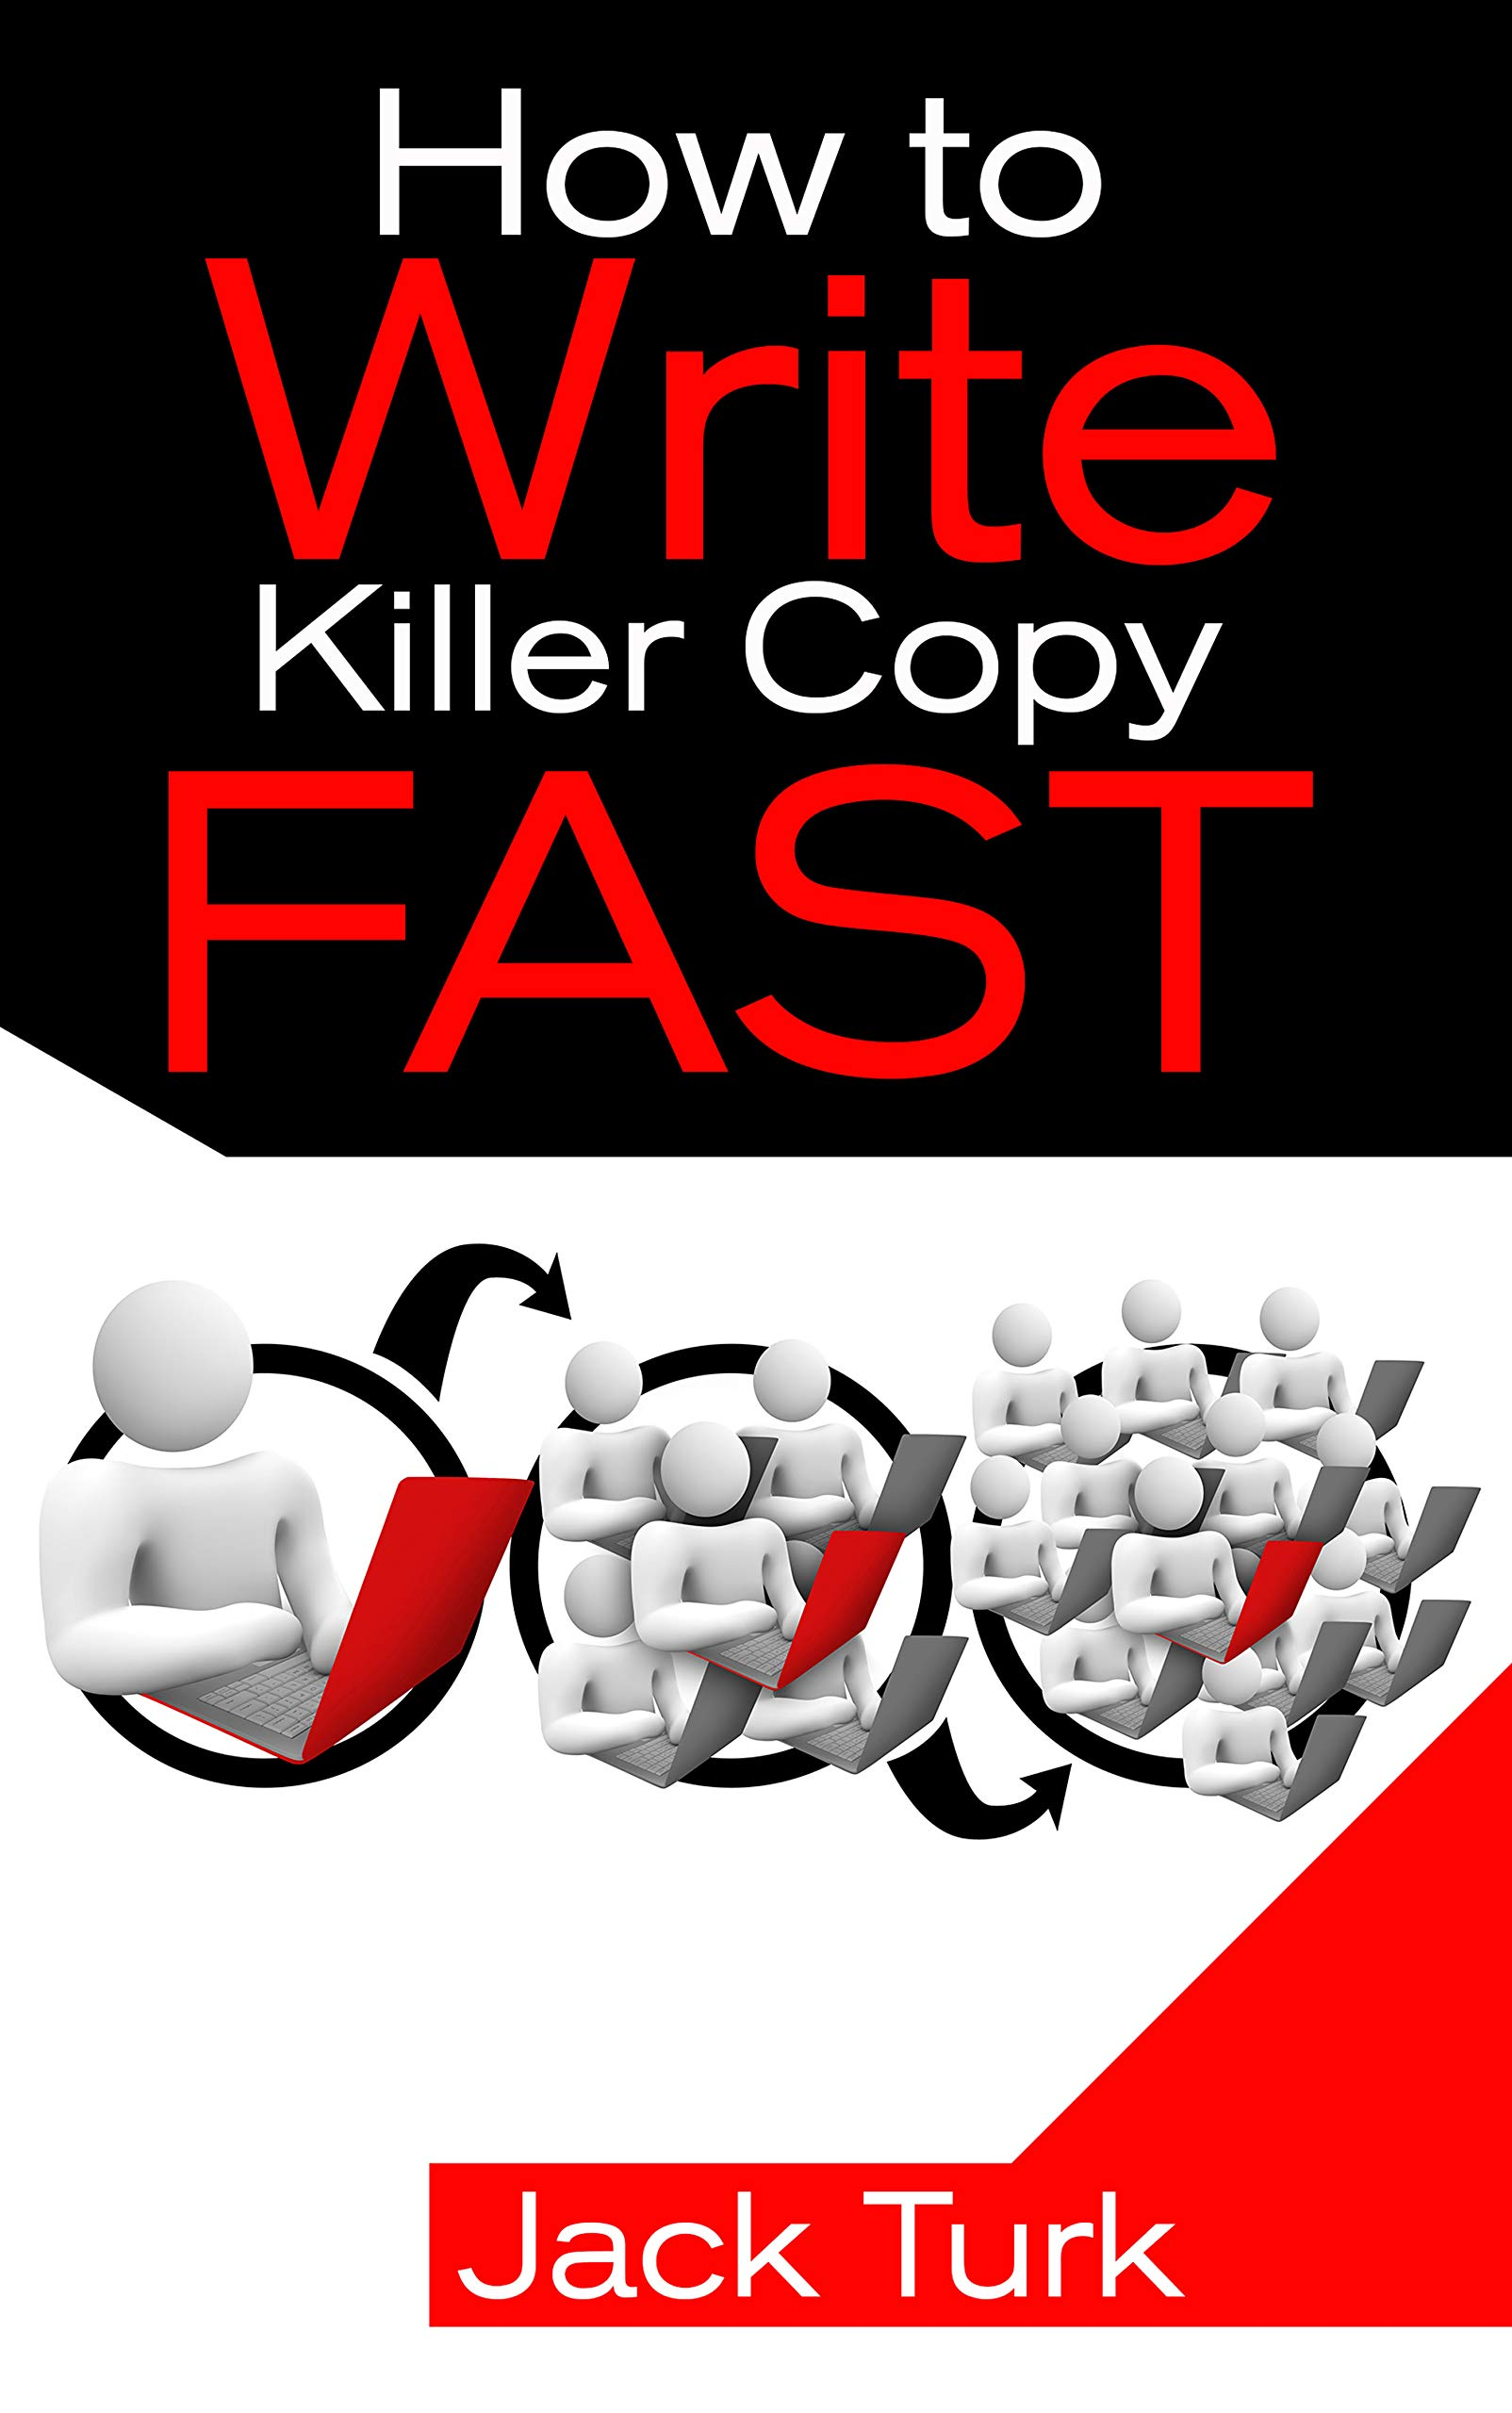 How to Write Killer Copy Fast